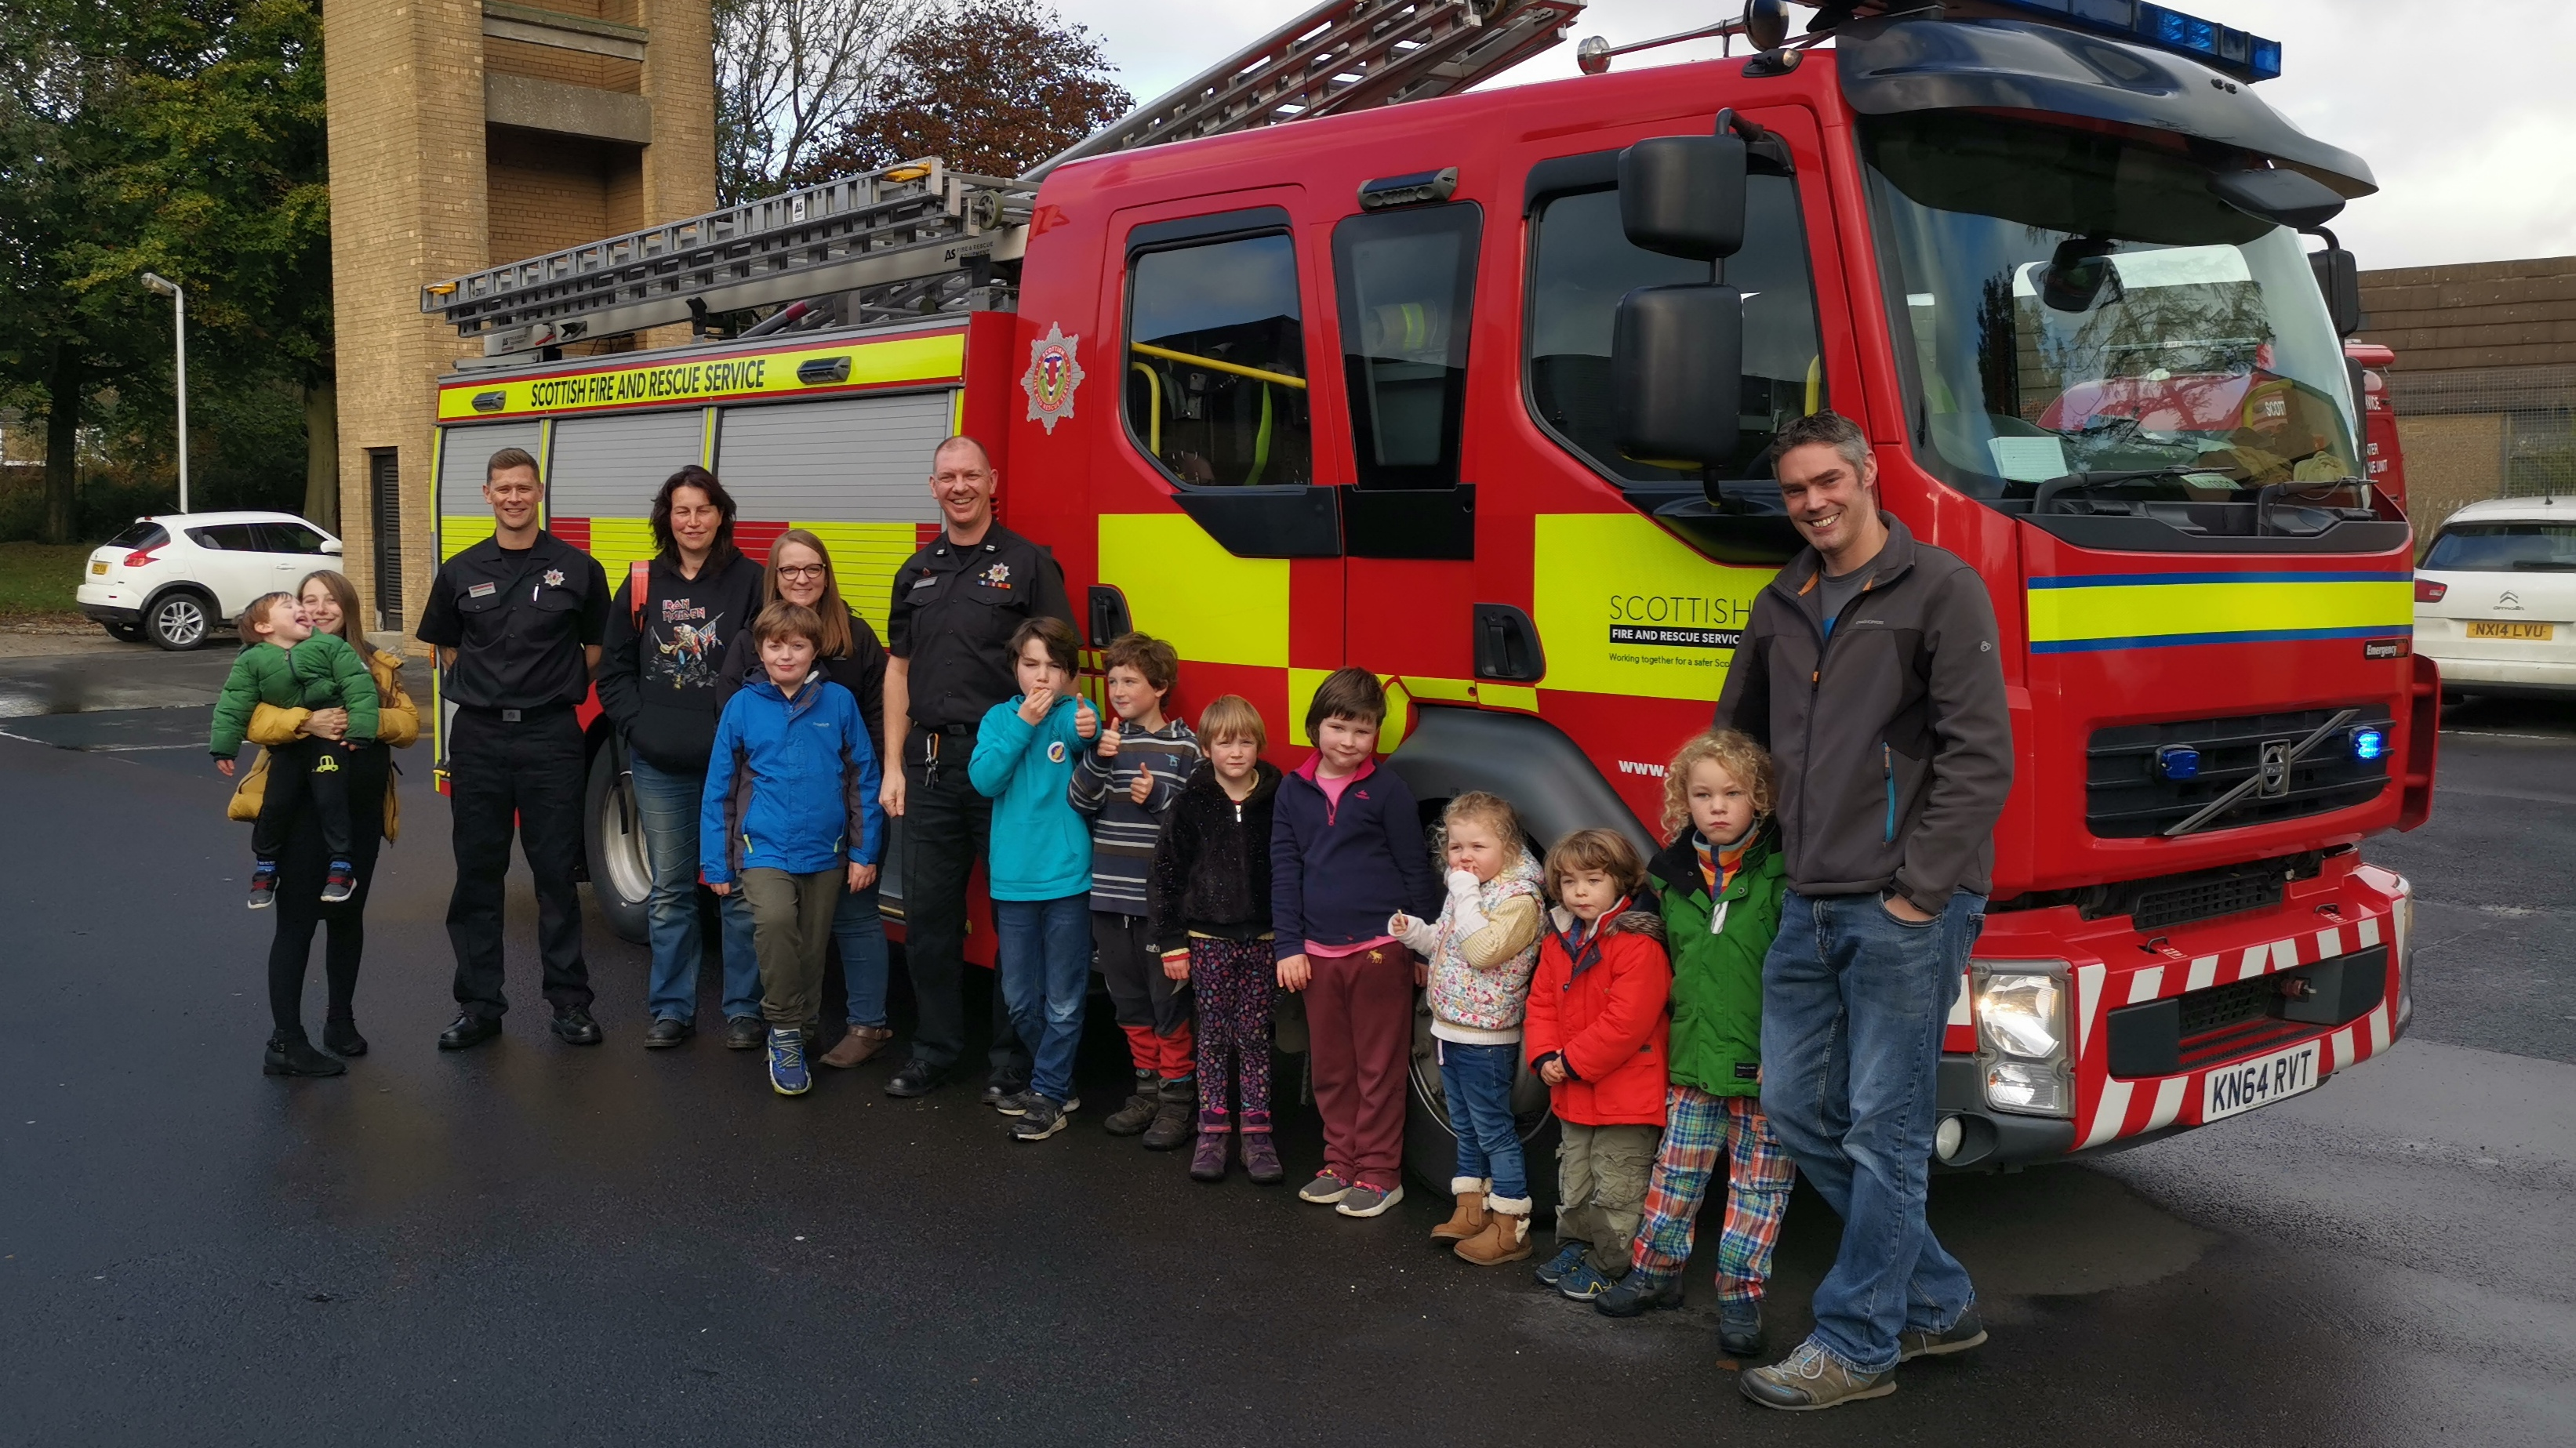 Firefighters with some of the pupils.